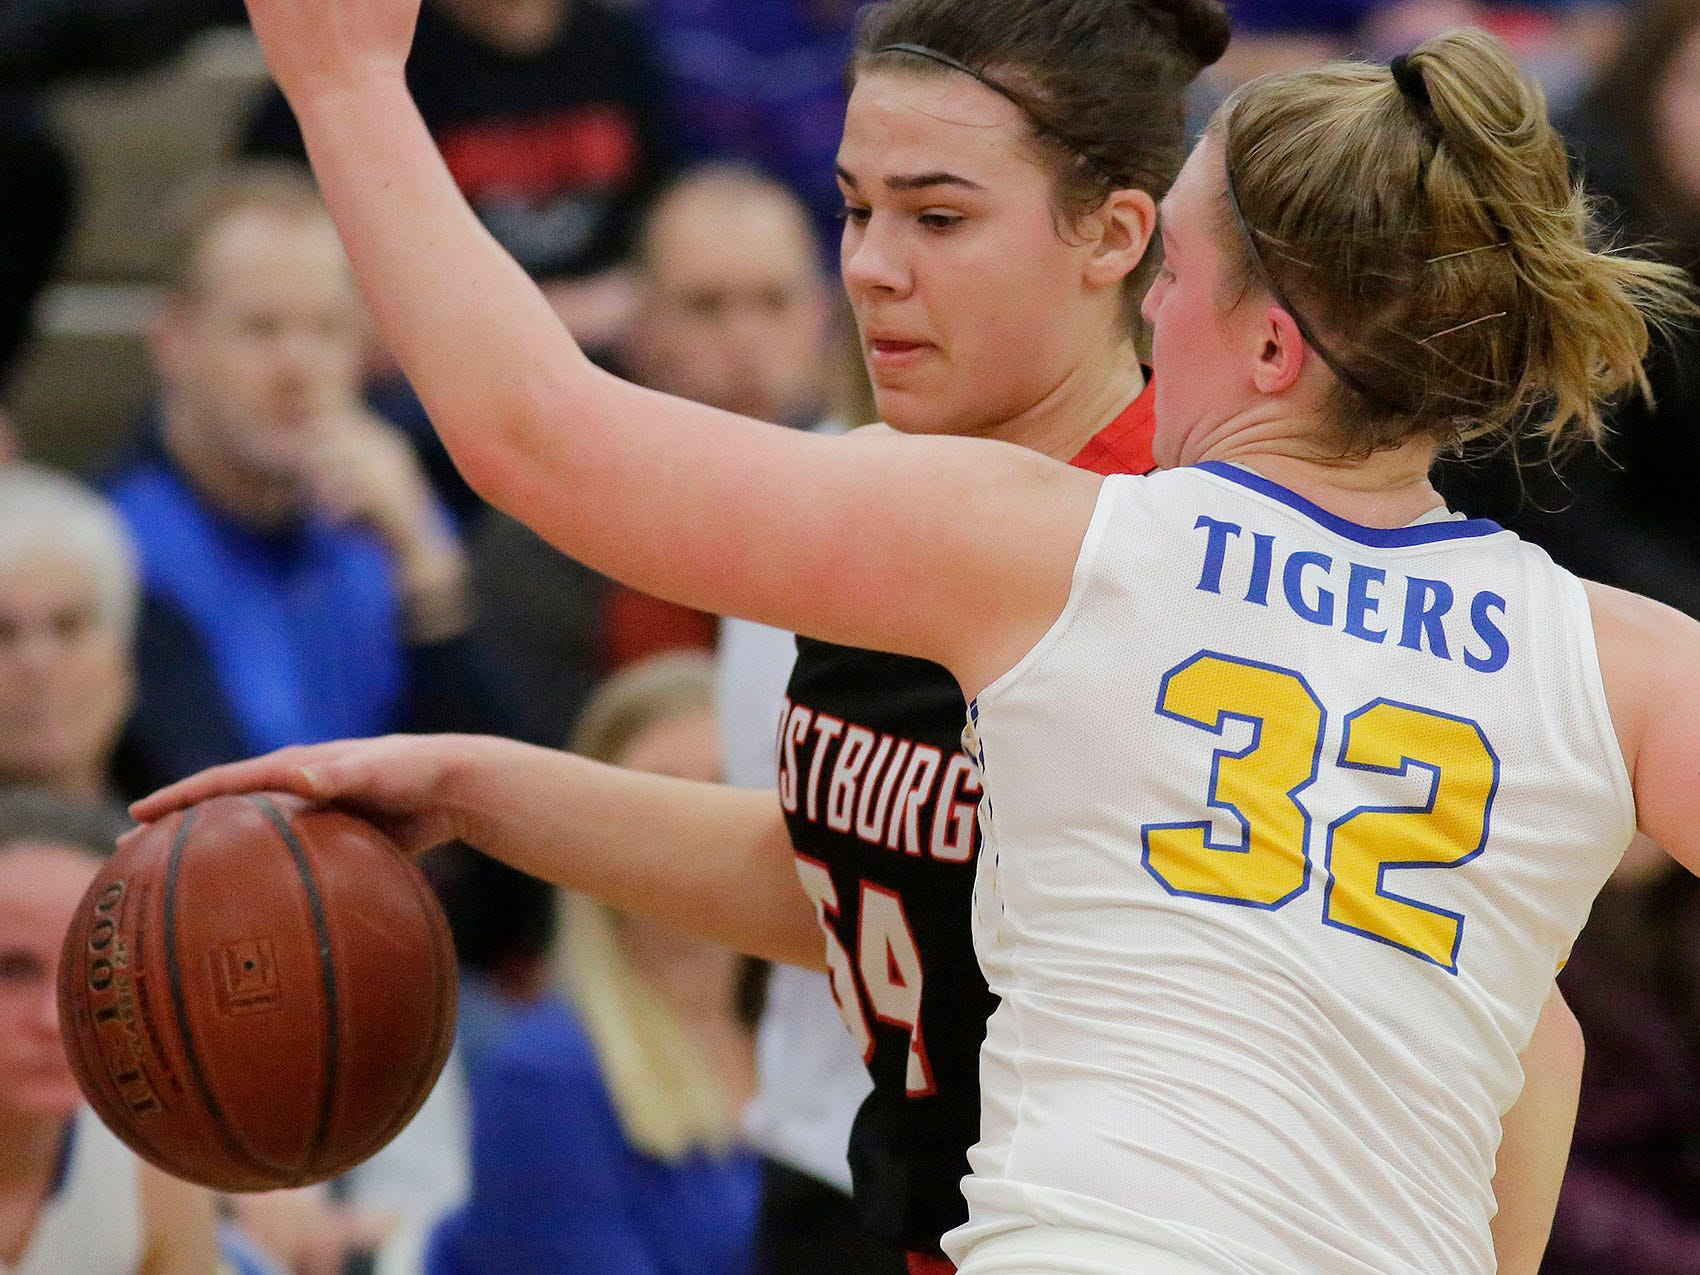 Oostburg's Skylar Ternes (54) dribbles the ball around Howards Grove's Maddy Near (32), Saturday, February 23, 2019, at Howards Grove, Wis.